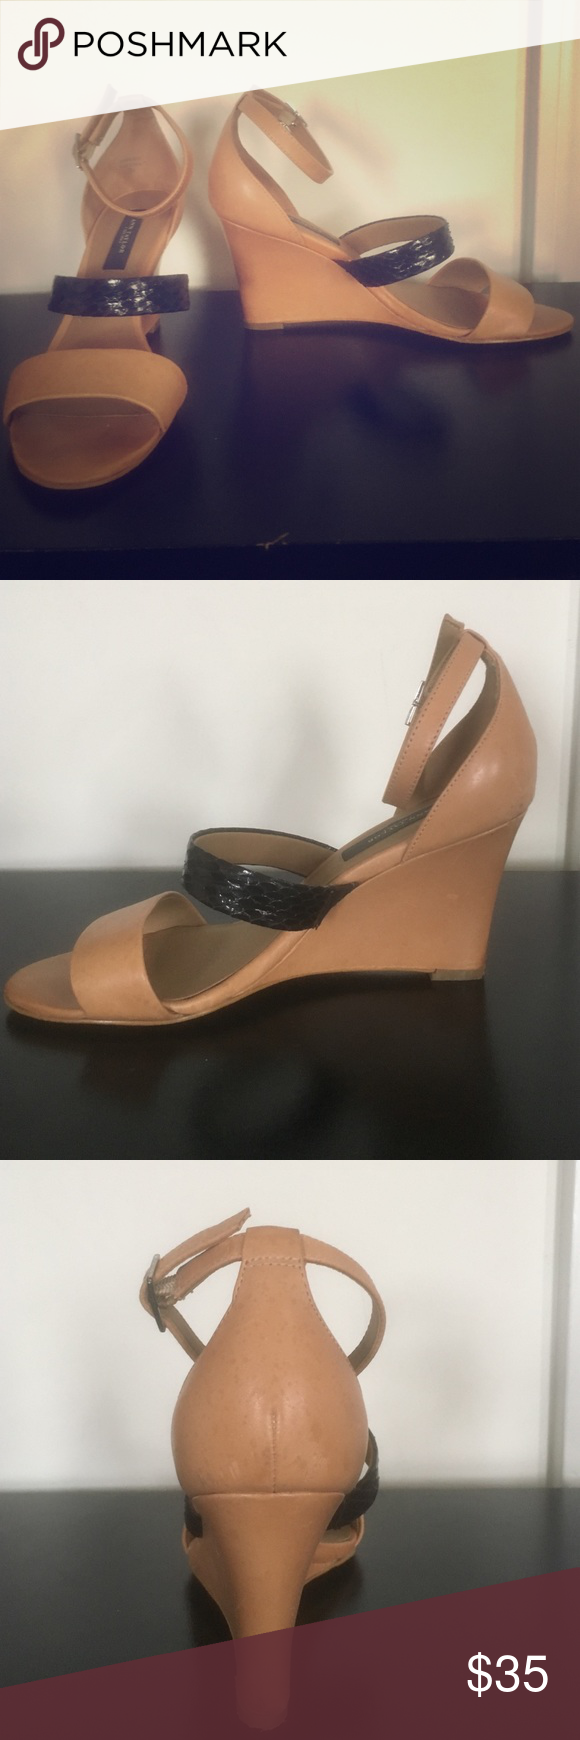 Ann Taylor wedges Chic Ann Taylor wedges! Tan shoe with a bold black strap in the middle. Shoes have been worn, a few scratches on the back of shoes, not too noticeable. In good condition. Fabulous shoes for work or for going out at night! Ann Taylor Shoes Wedges